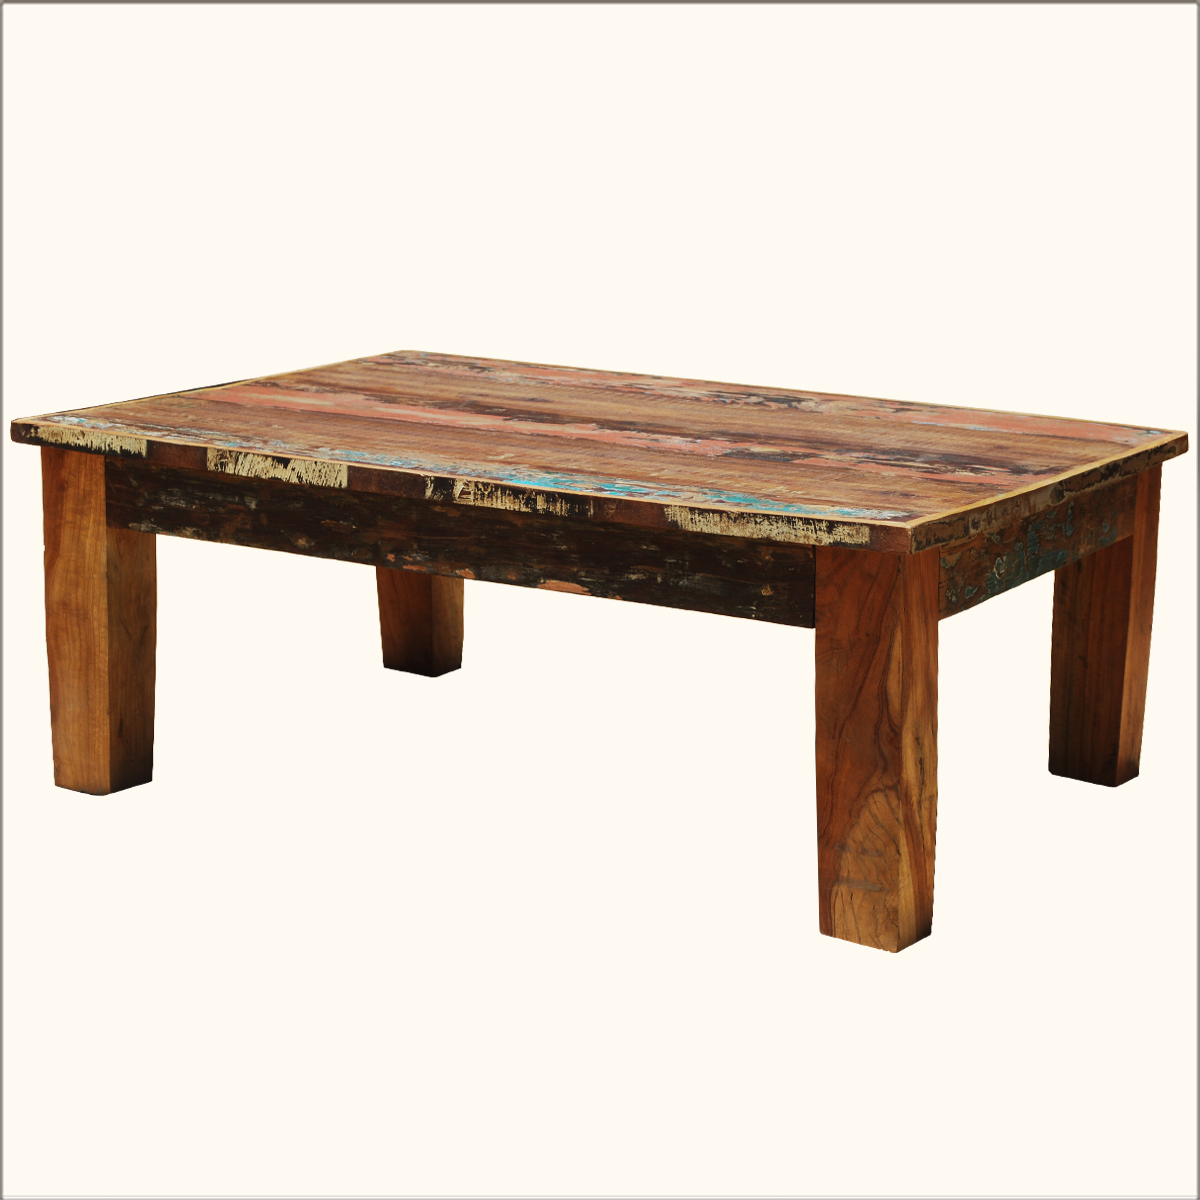 Distressed rustic reclaimed coffee table wood multi color for Reclaimed coffee table